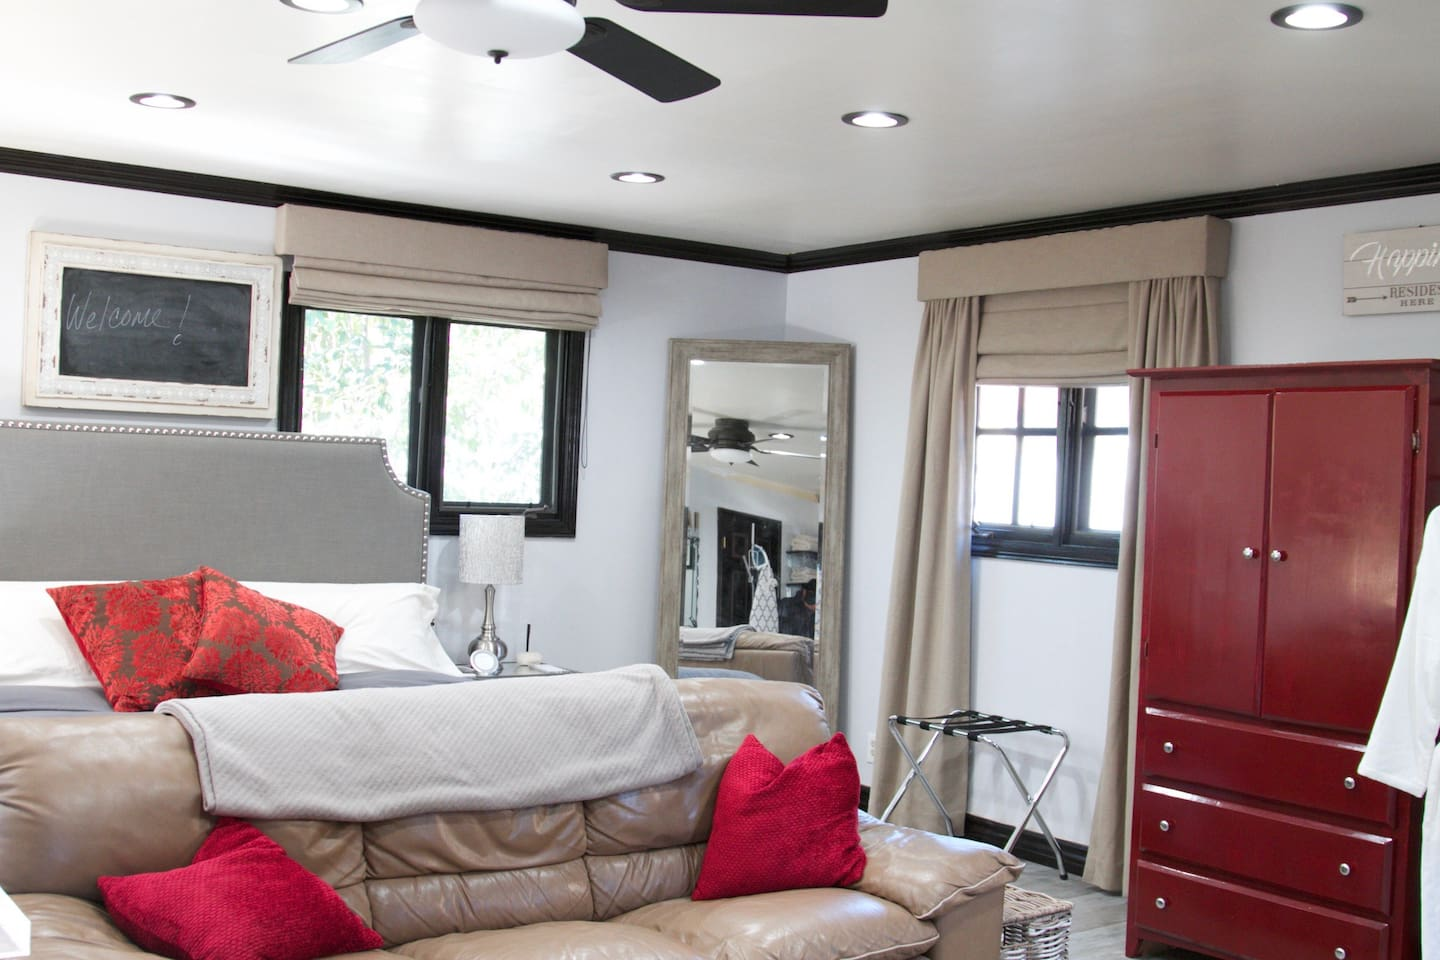 Air conditioning/Heating with Lots of Natural light plus overhead lighting, large mirror and armoire for clothing storage.